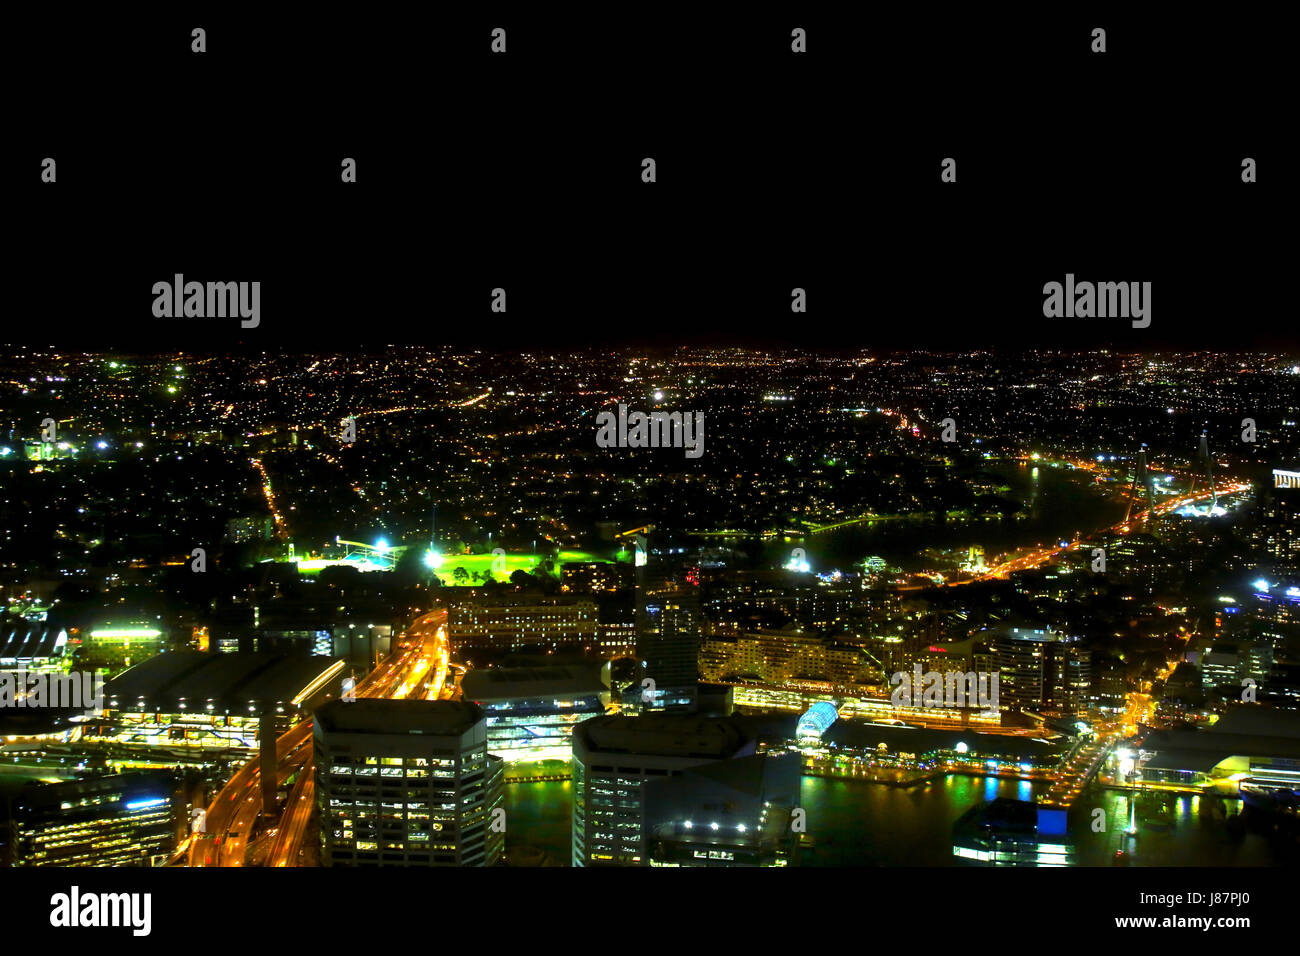 A night view of Sydney taken from the Sydney Eye and showing part of the harbour in the foreground. There is room - Stock Image